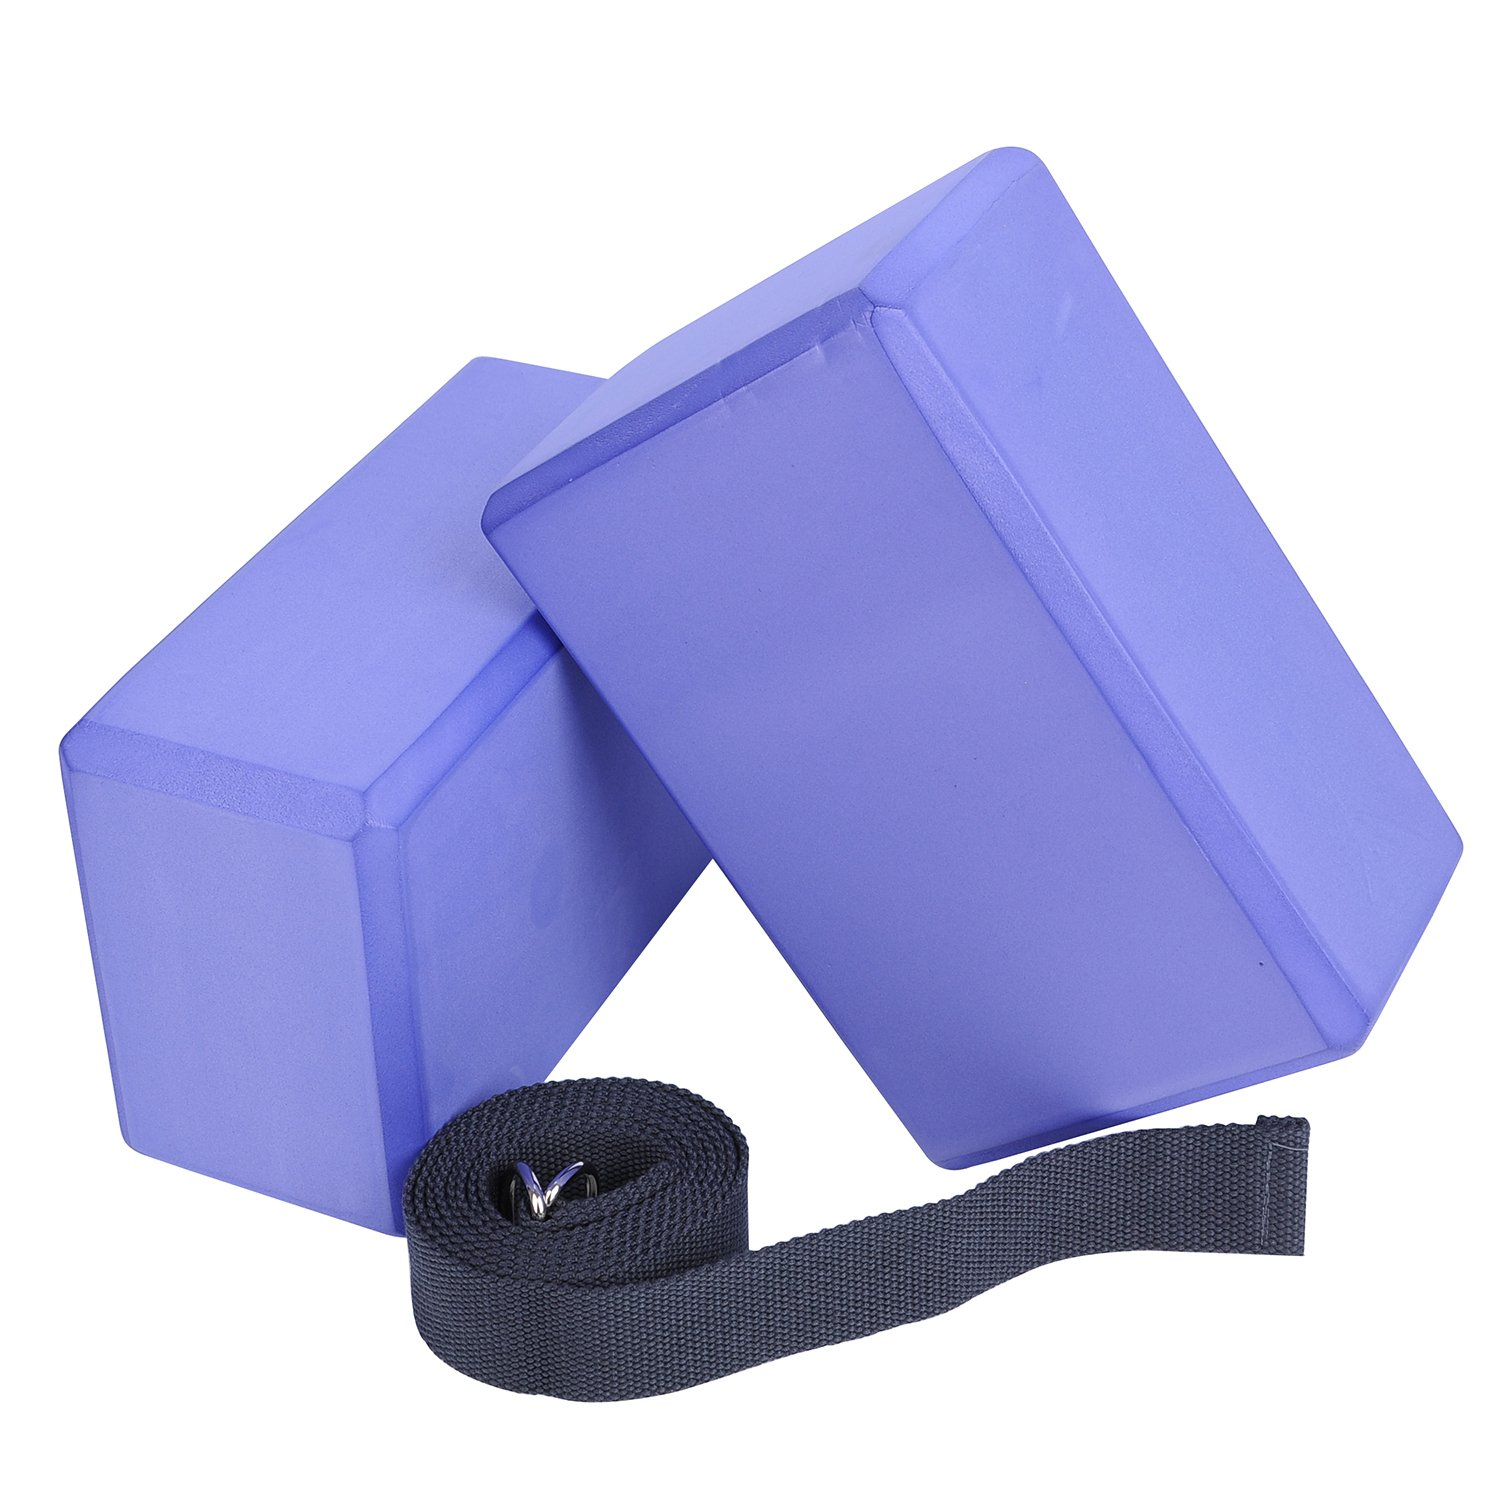 Veda Yoga Foam Blocks